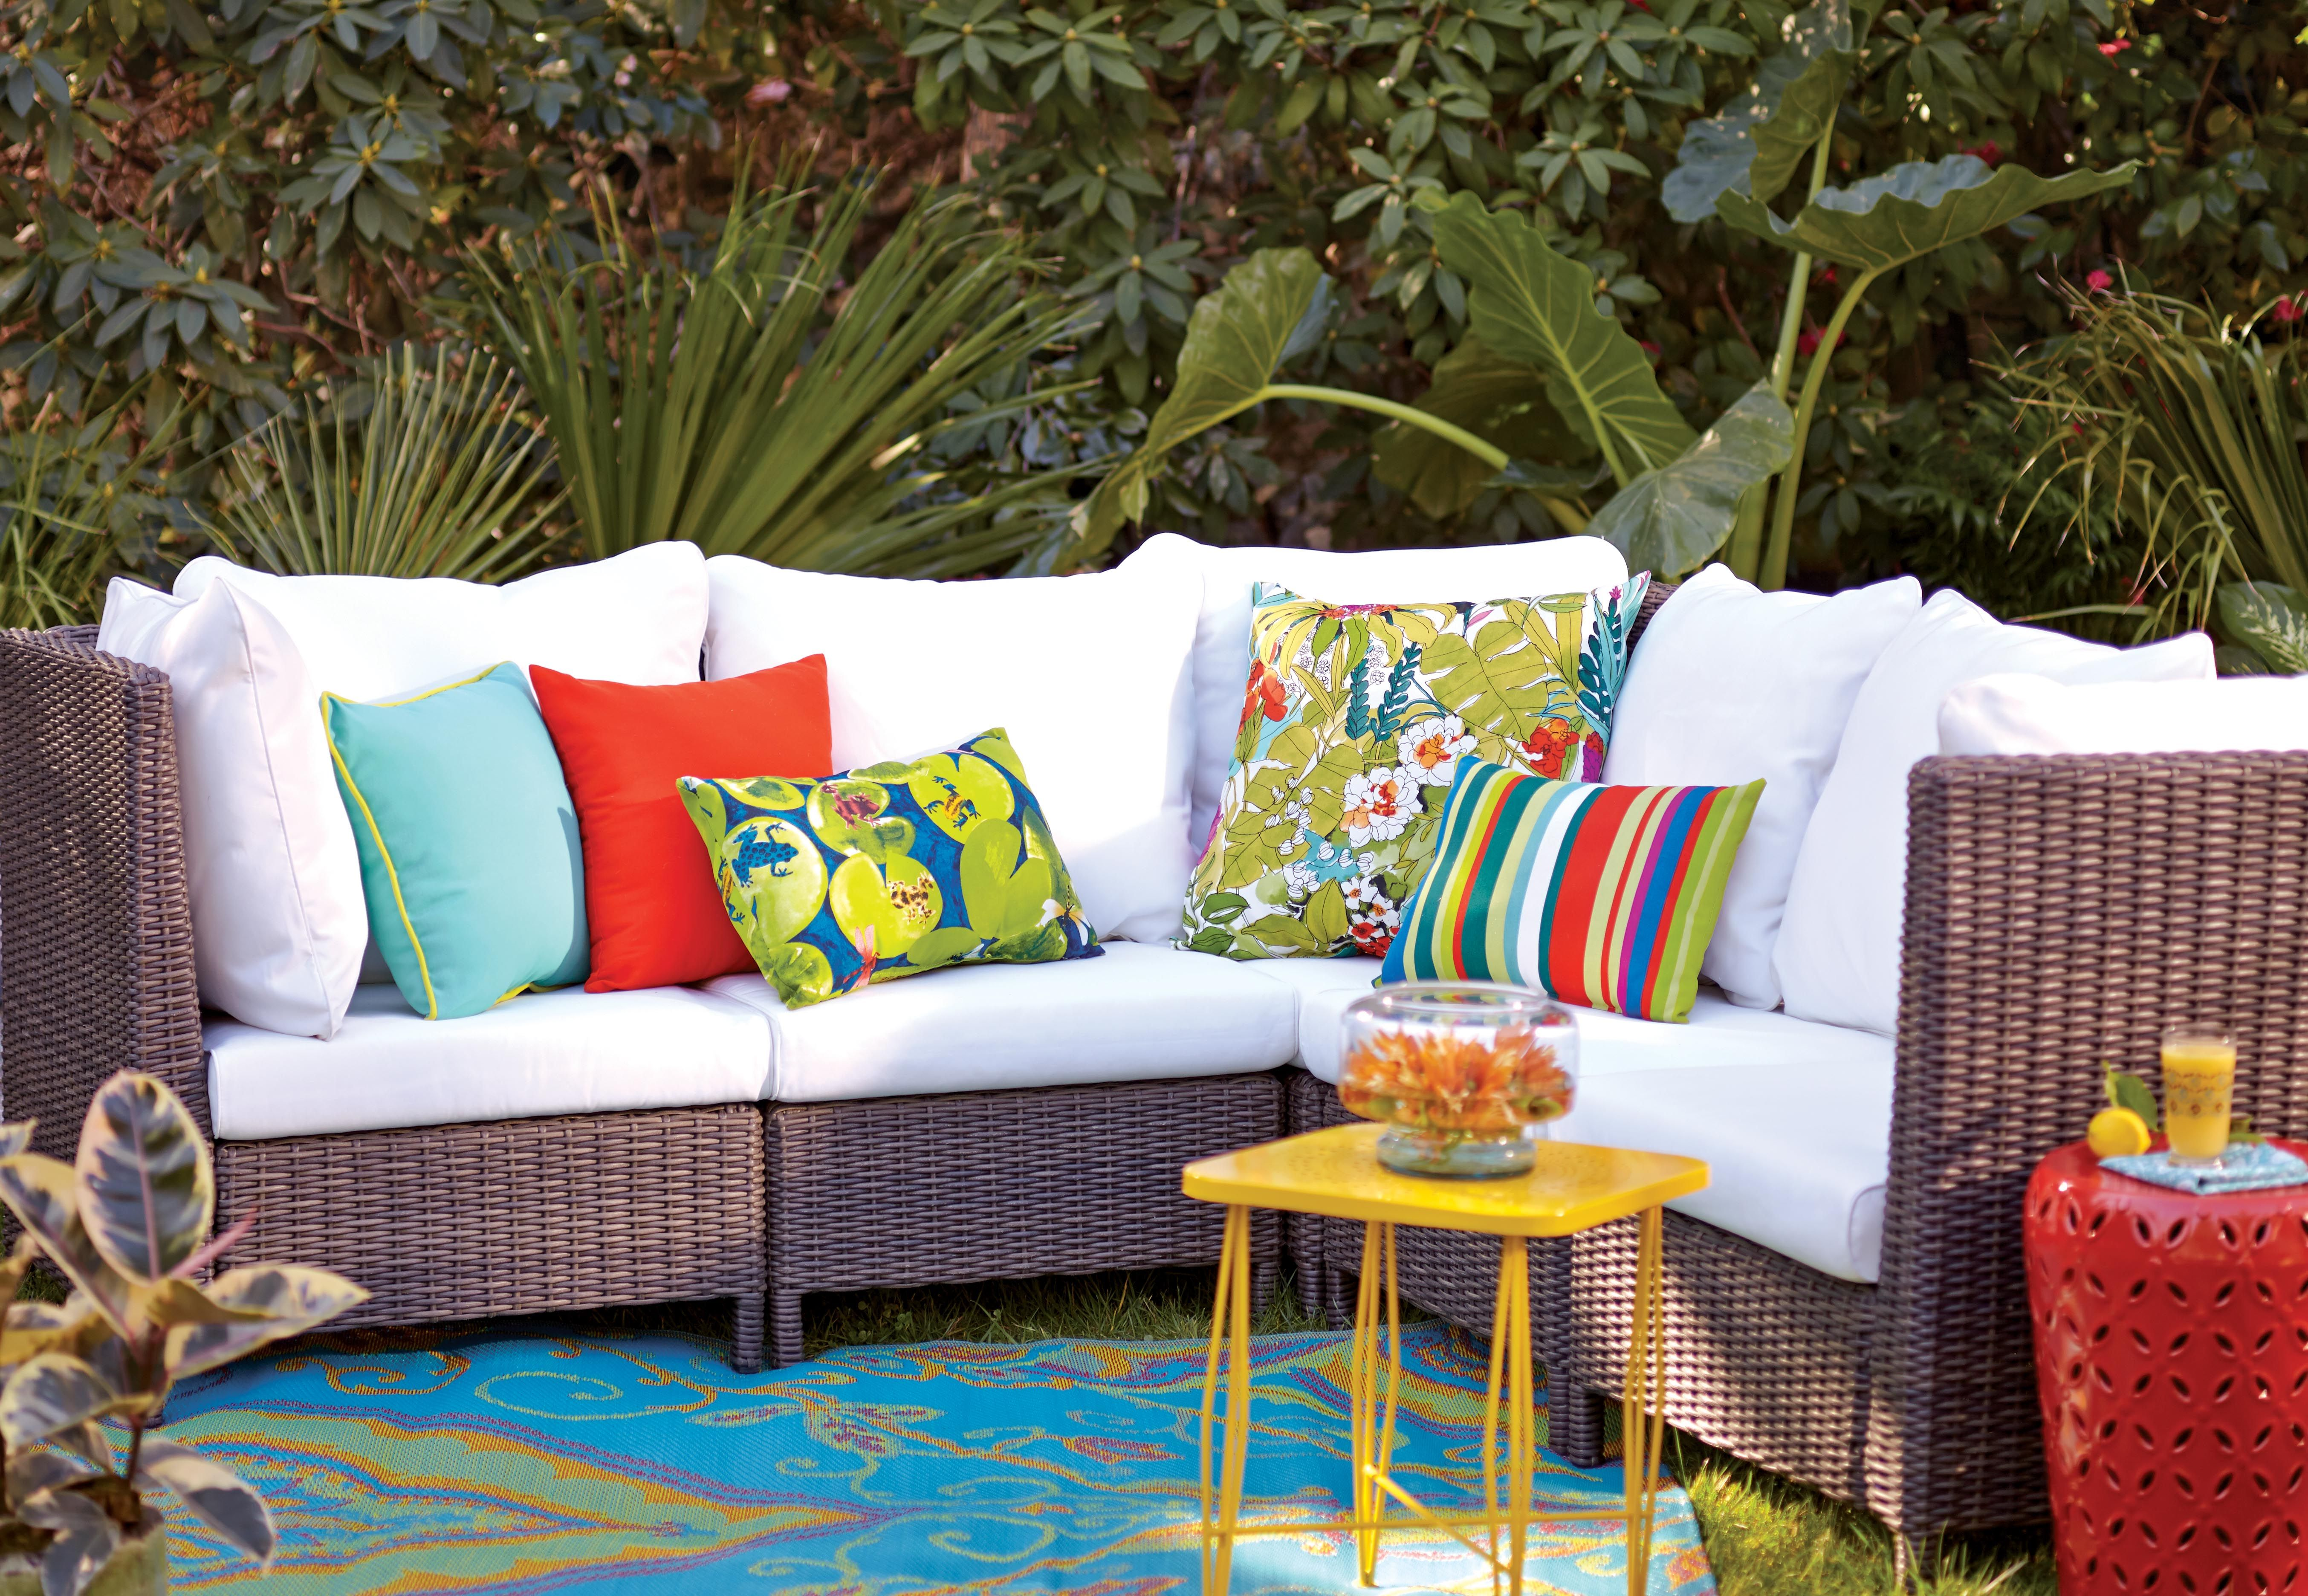 Create an outdoor getaway with outdoor seating patio furniture classic adirondack chairs and more backyard must haves at very relaxing prices